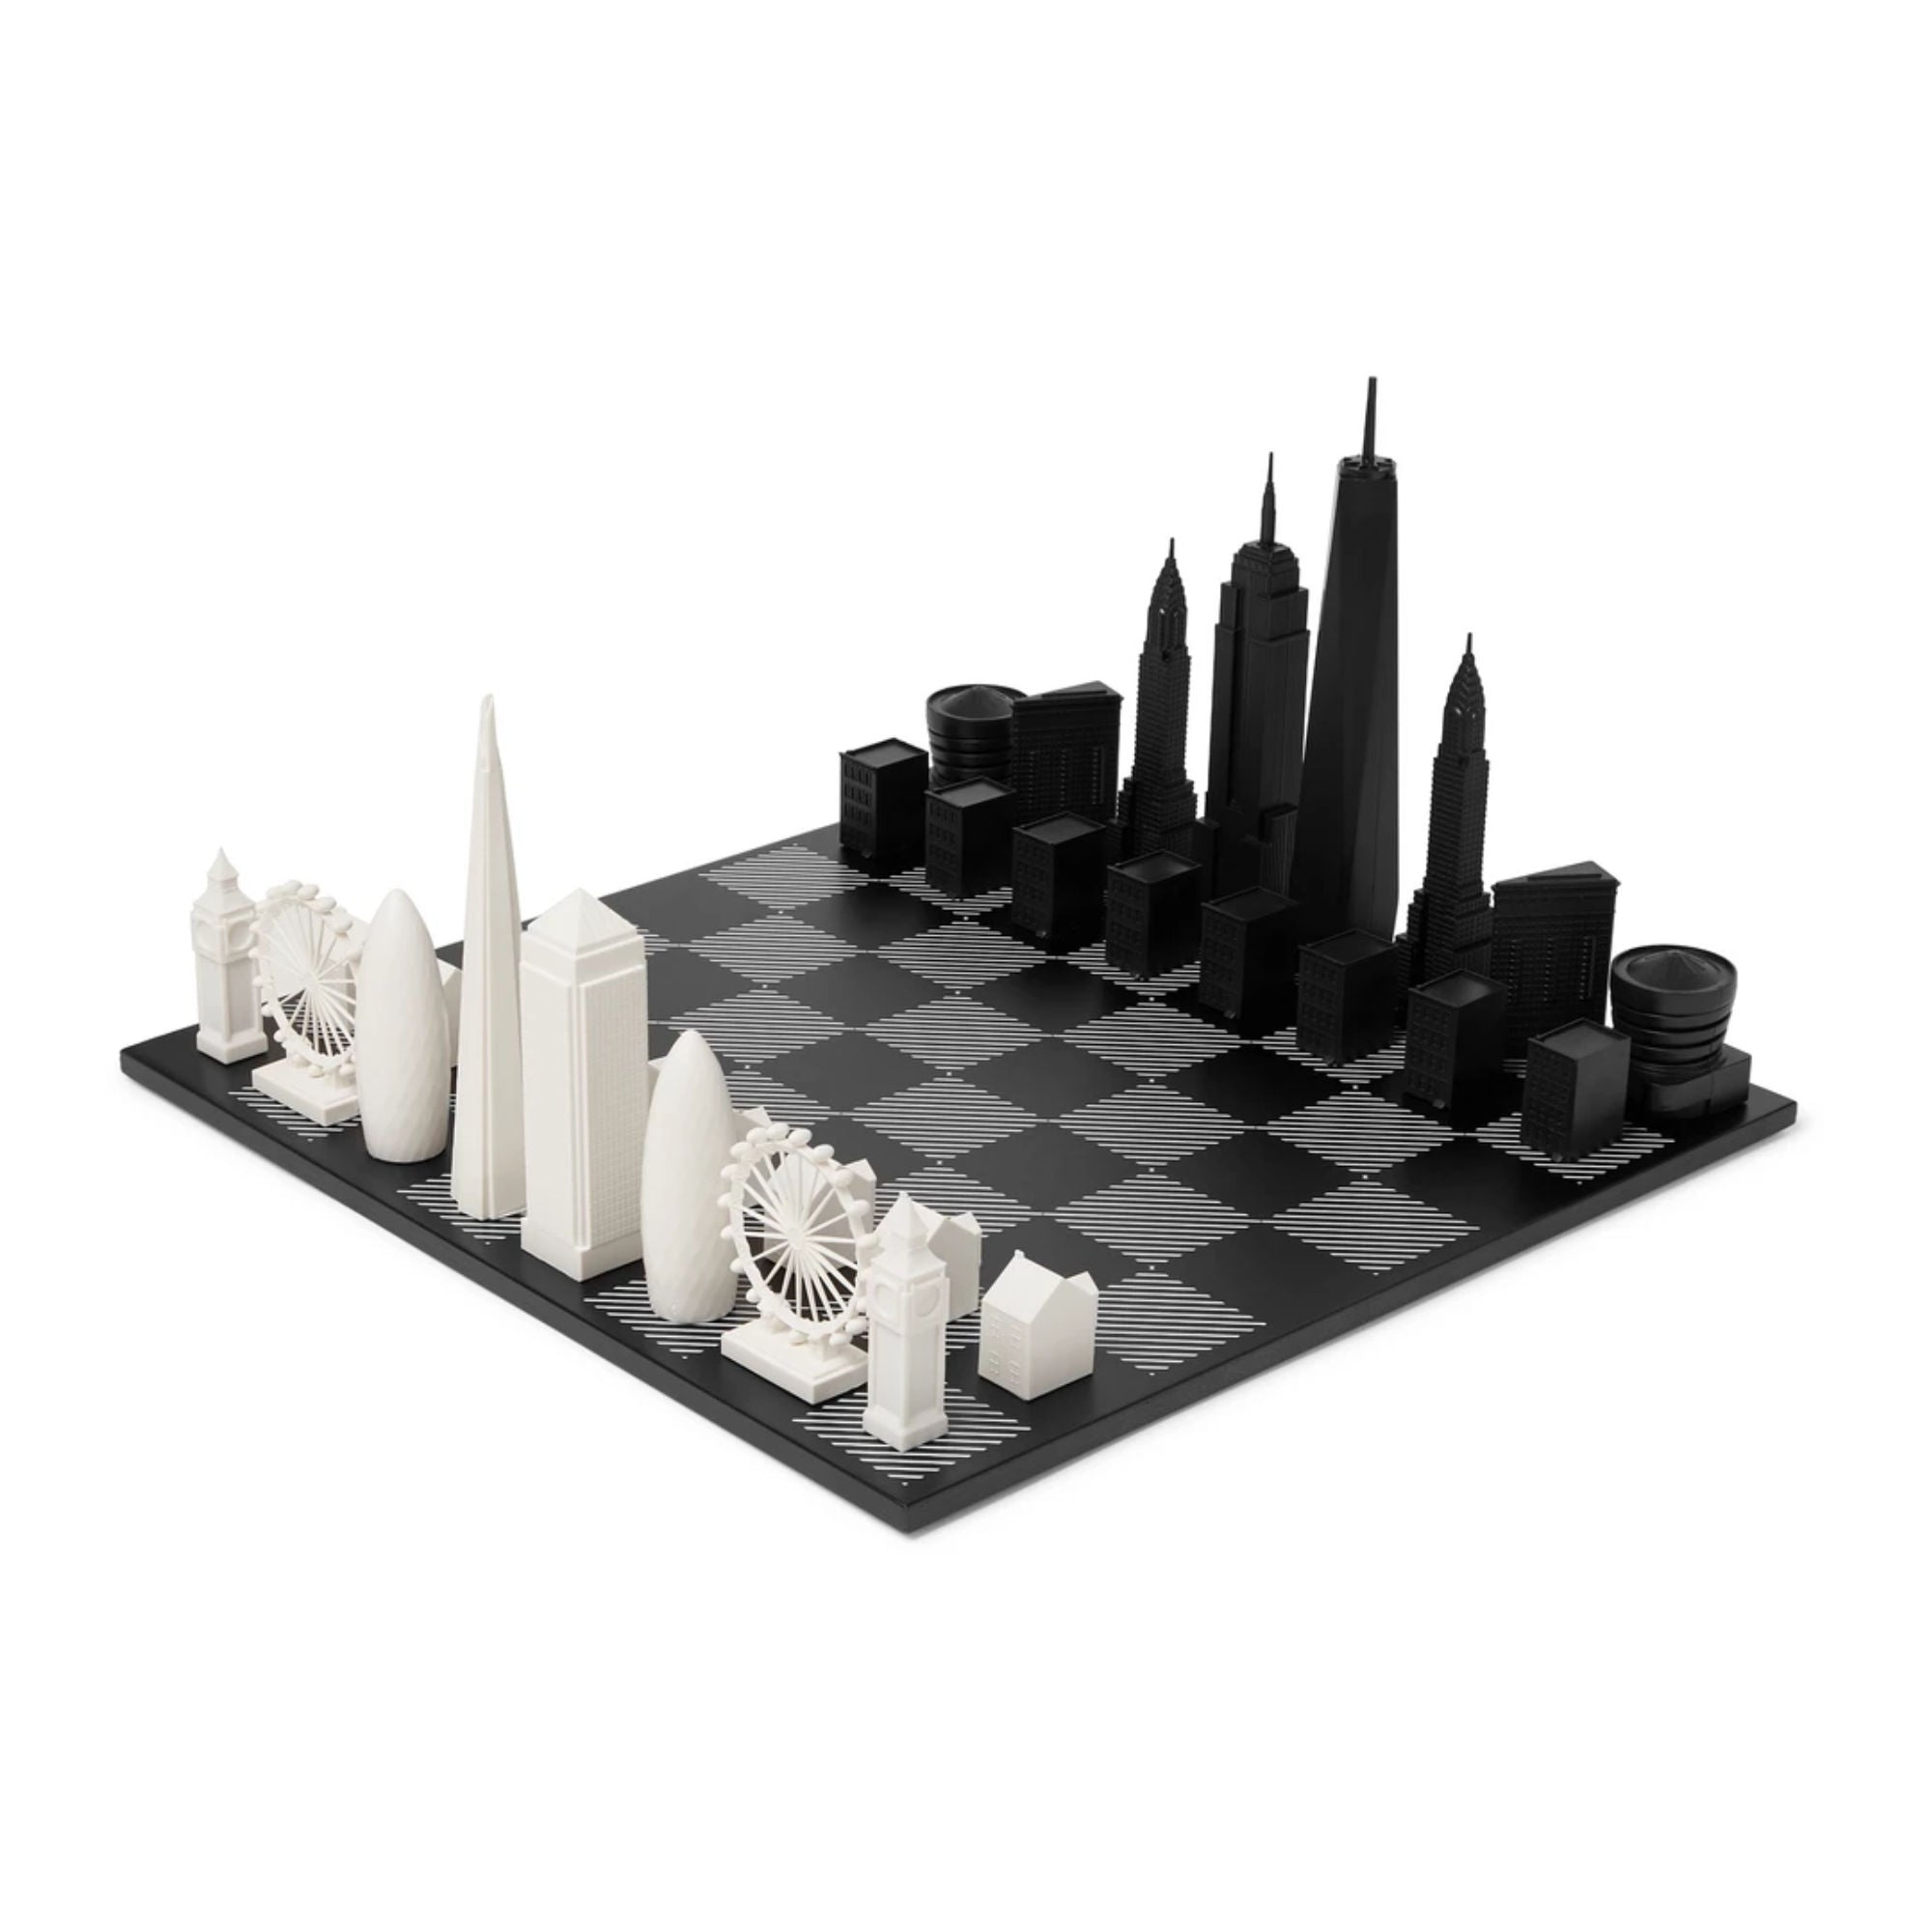 Skyline Chess London vs New York Acrylic and Wood Chess Set